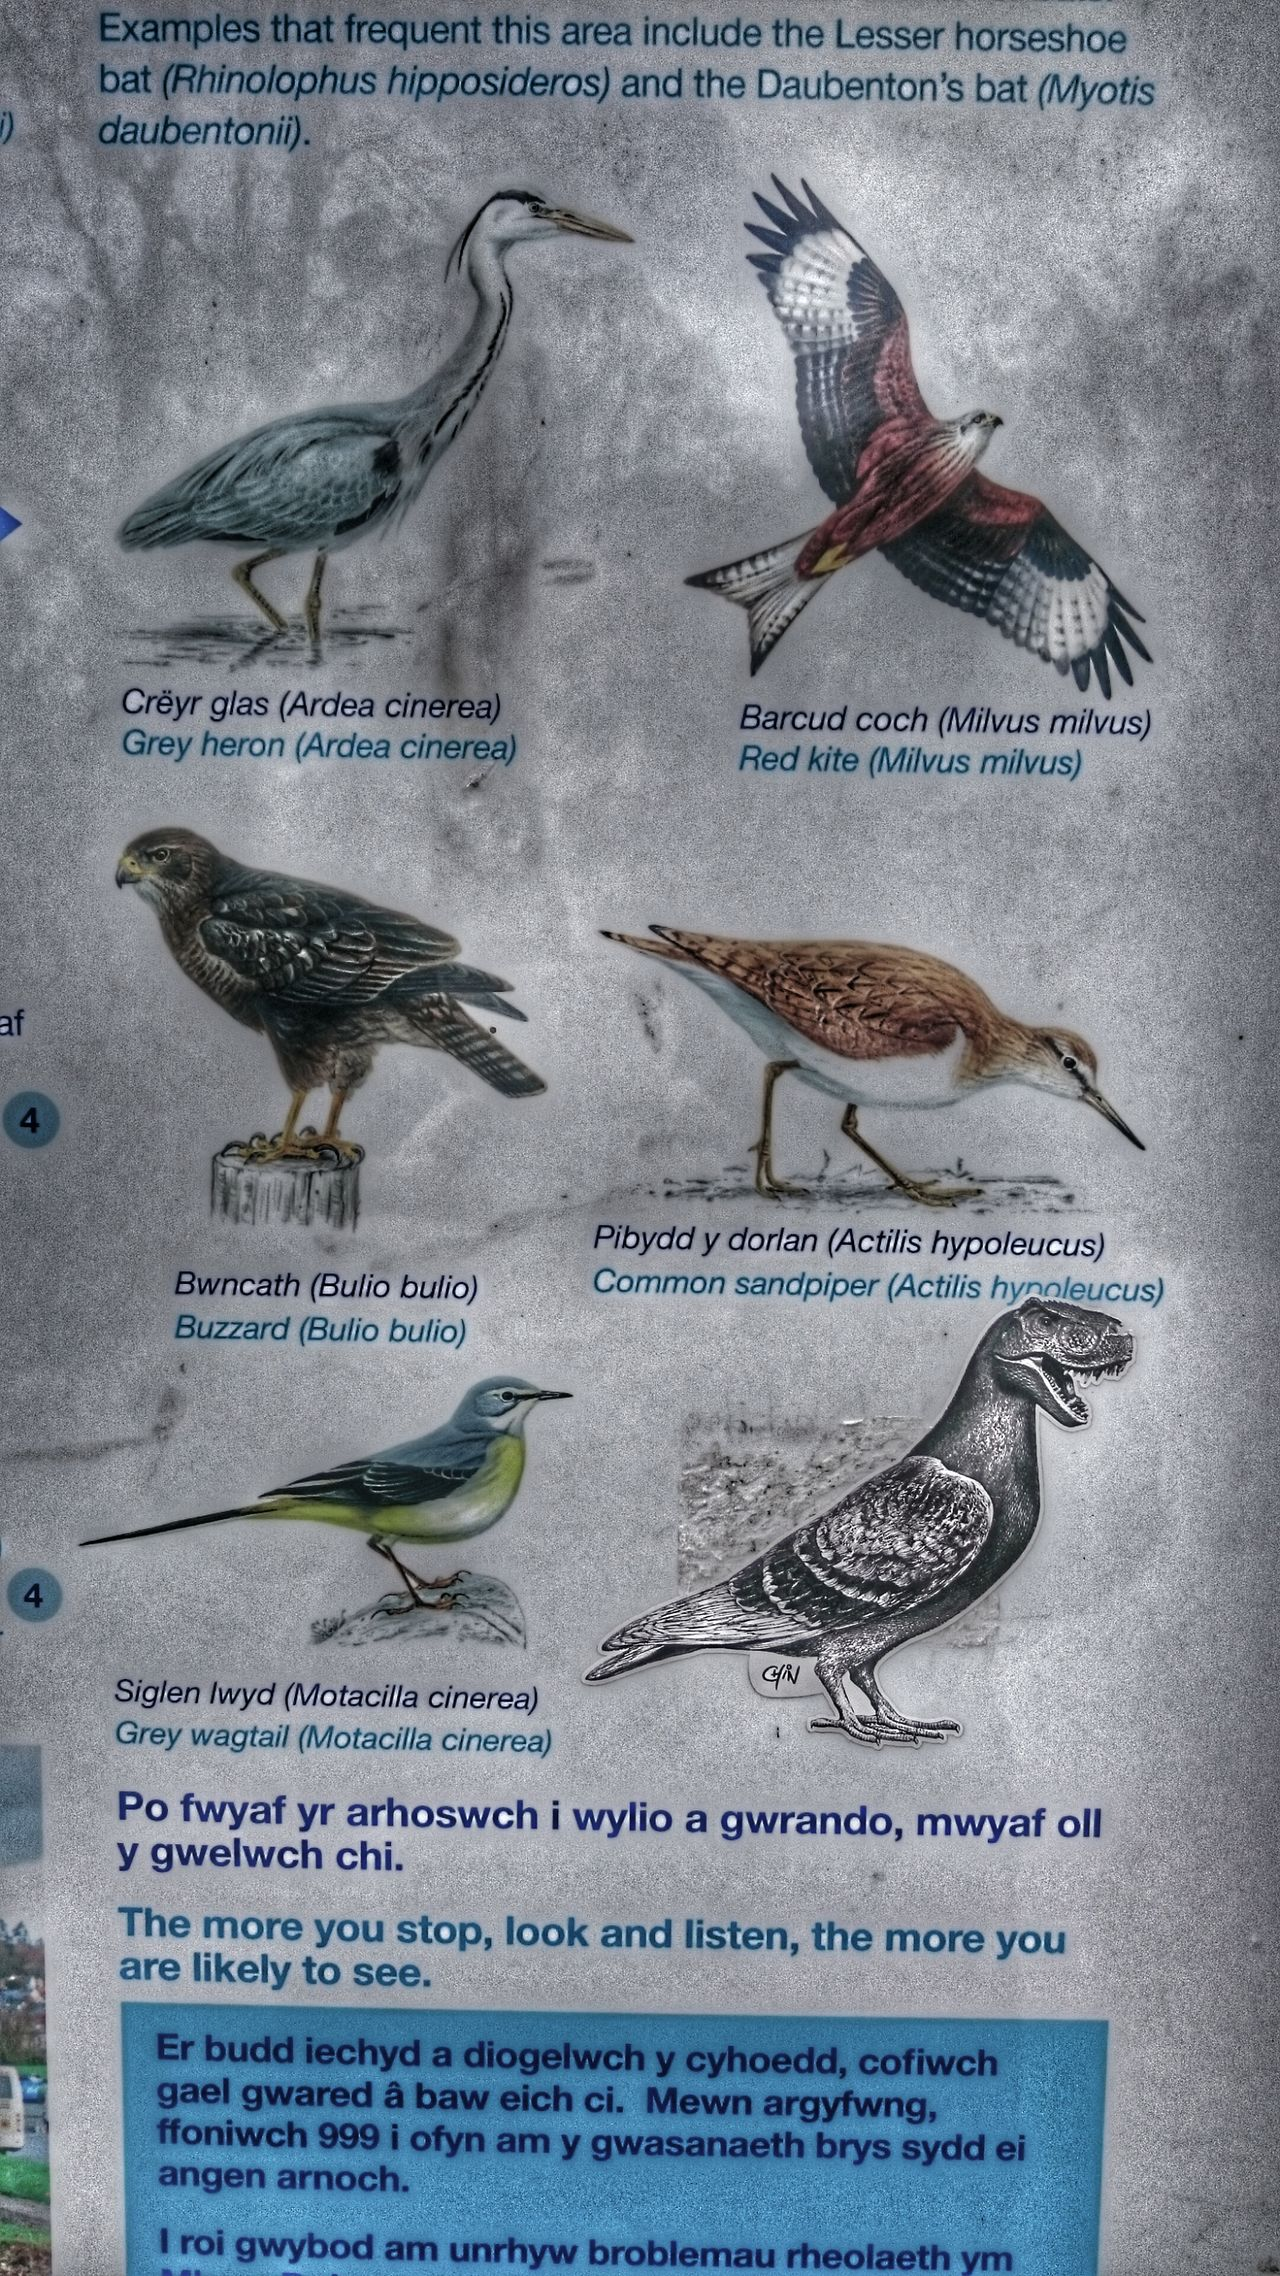 Spot The Odd One Out! Spot The Obvious T-Rex !  Bird Guide Just For Laughs:-) Hope I Dont Find One Ha Ha Ha Ha